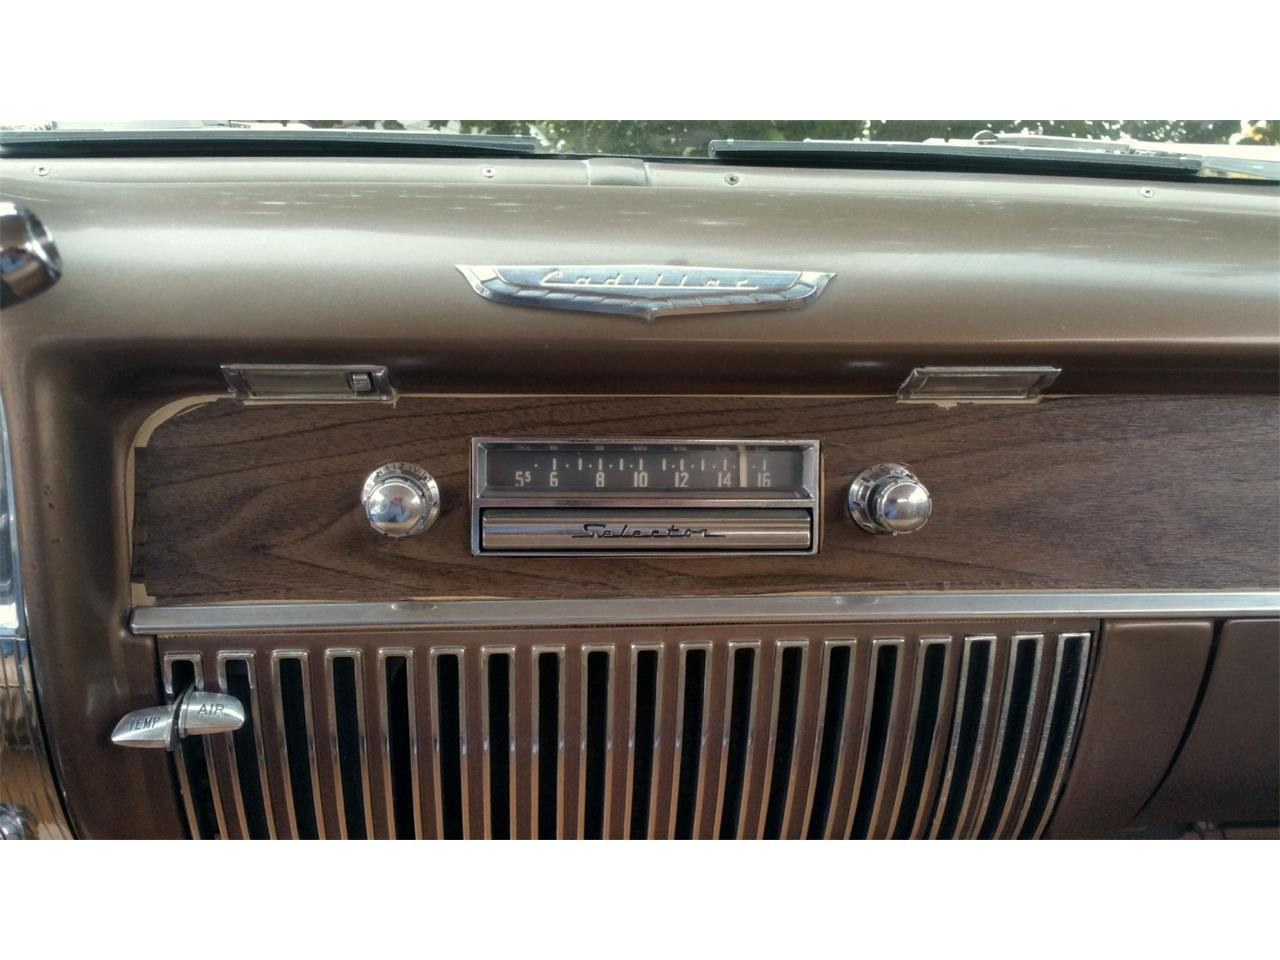 1951 Cadillac Coupe Deville For Sale Cc 1031412 Large Picture Of Located In Minnesota M3uc